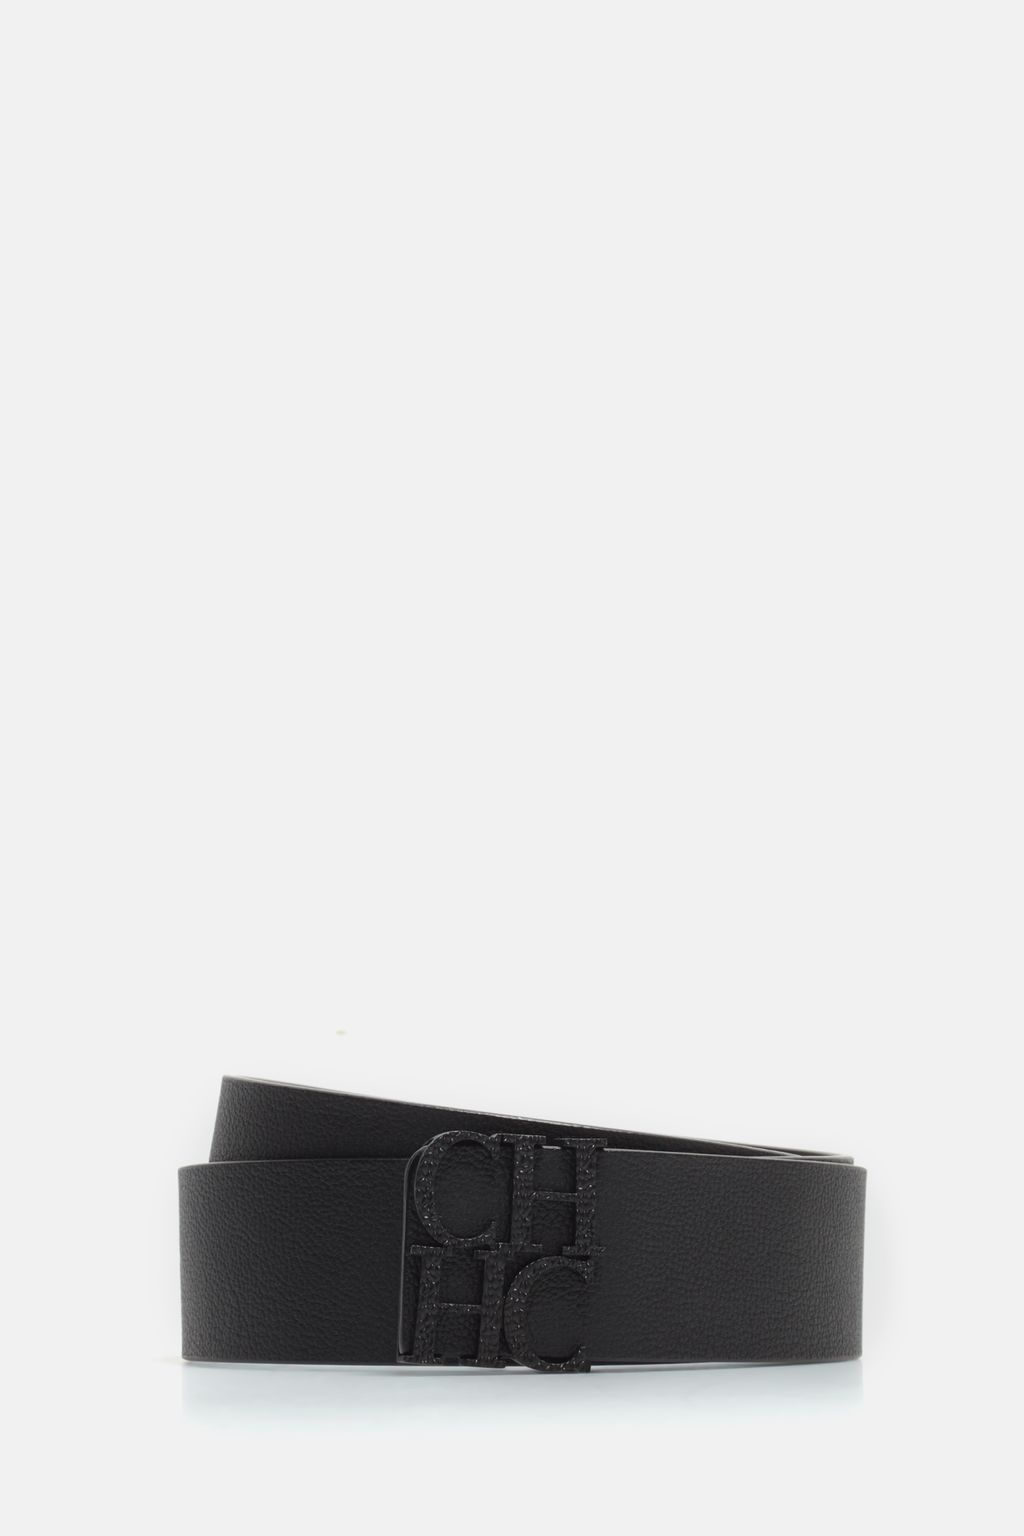 CH leather belt